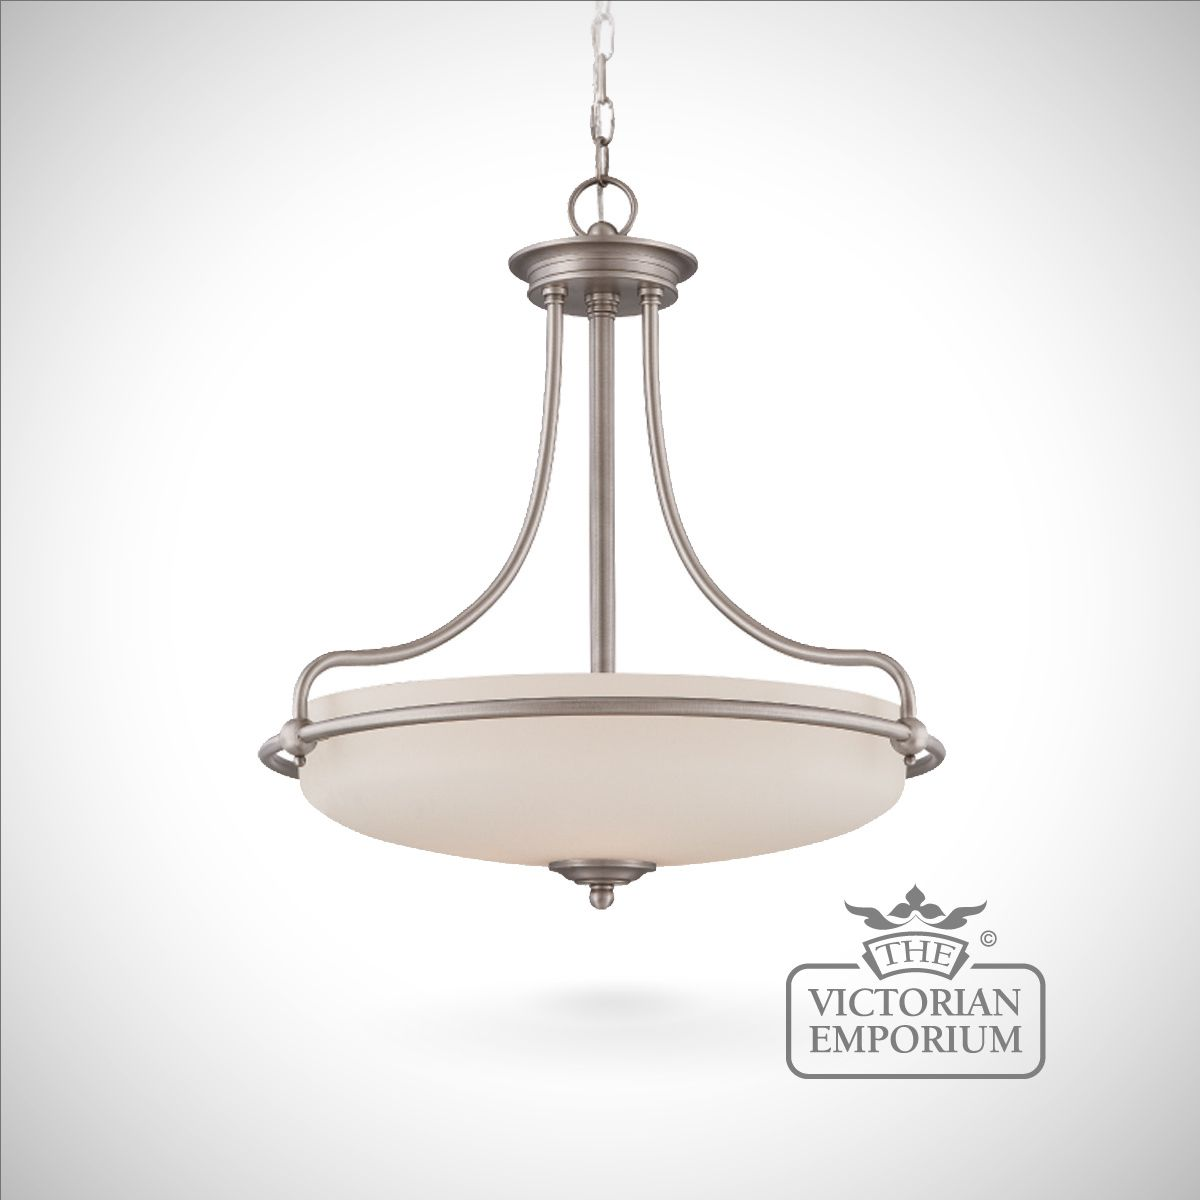 Simple And Elegant Ceiling Light With Chain